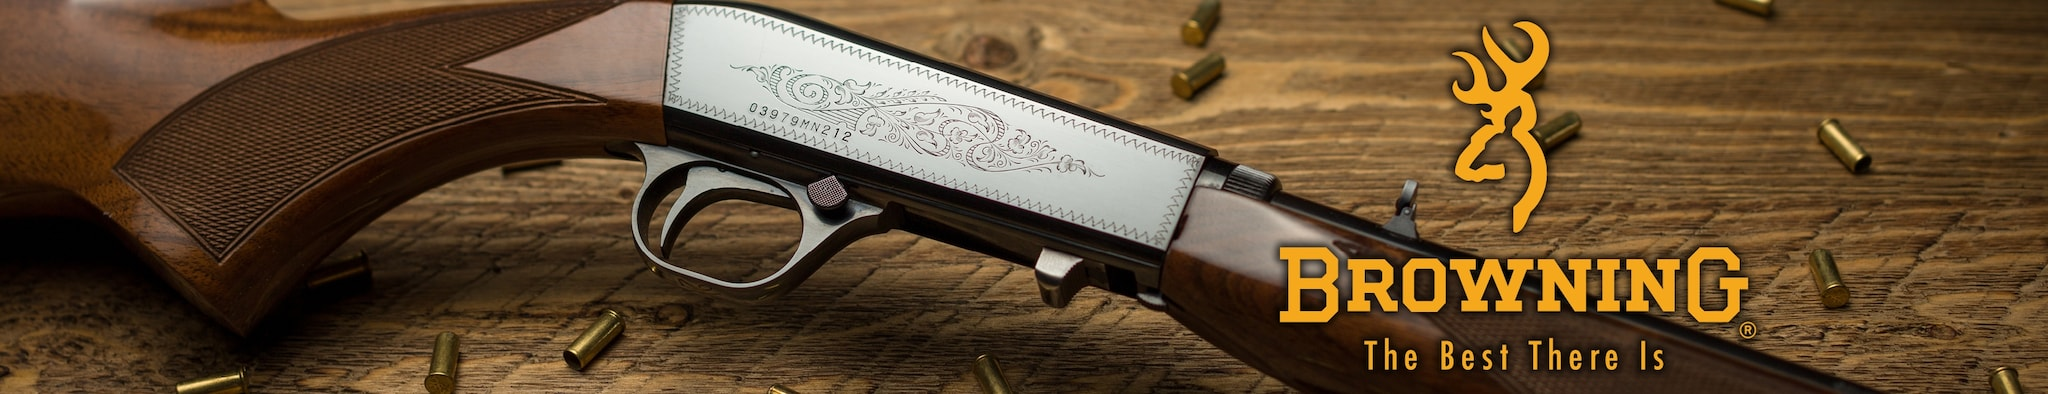 Browning Brand Page